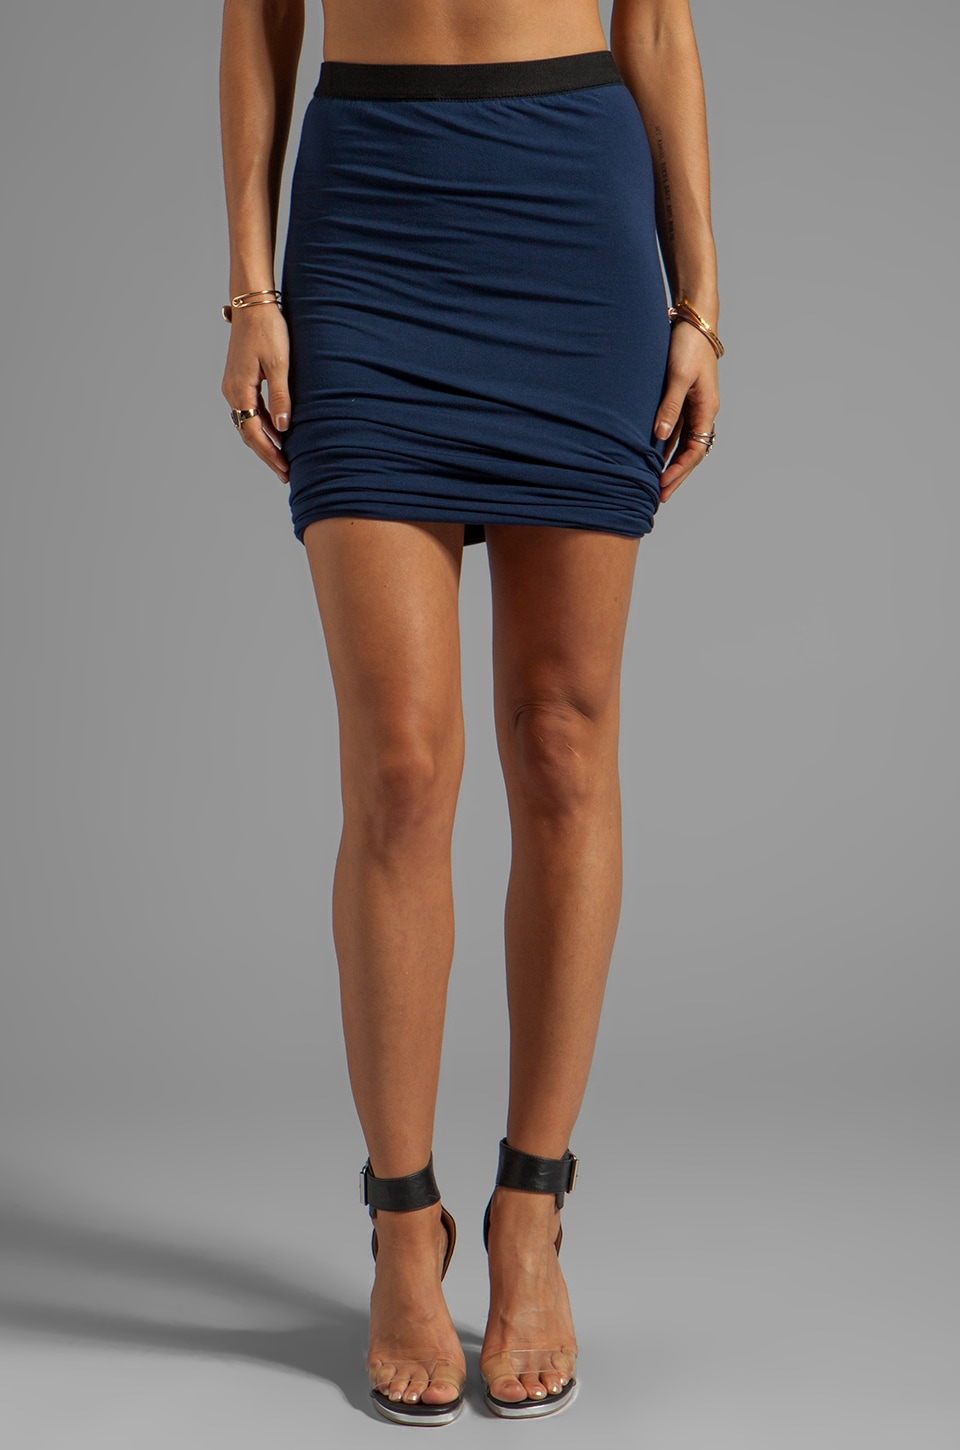 T by Alexander Wang Modal Spandex Double Twist Skirt in Indigo